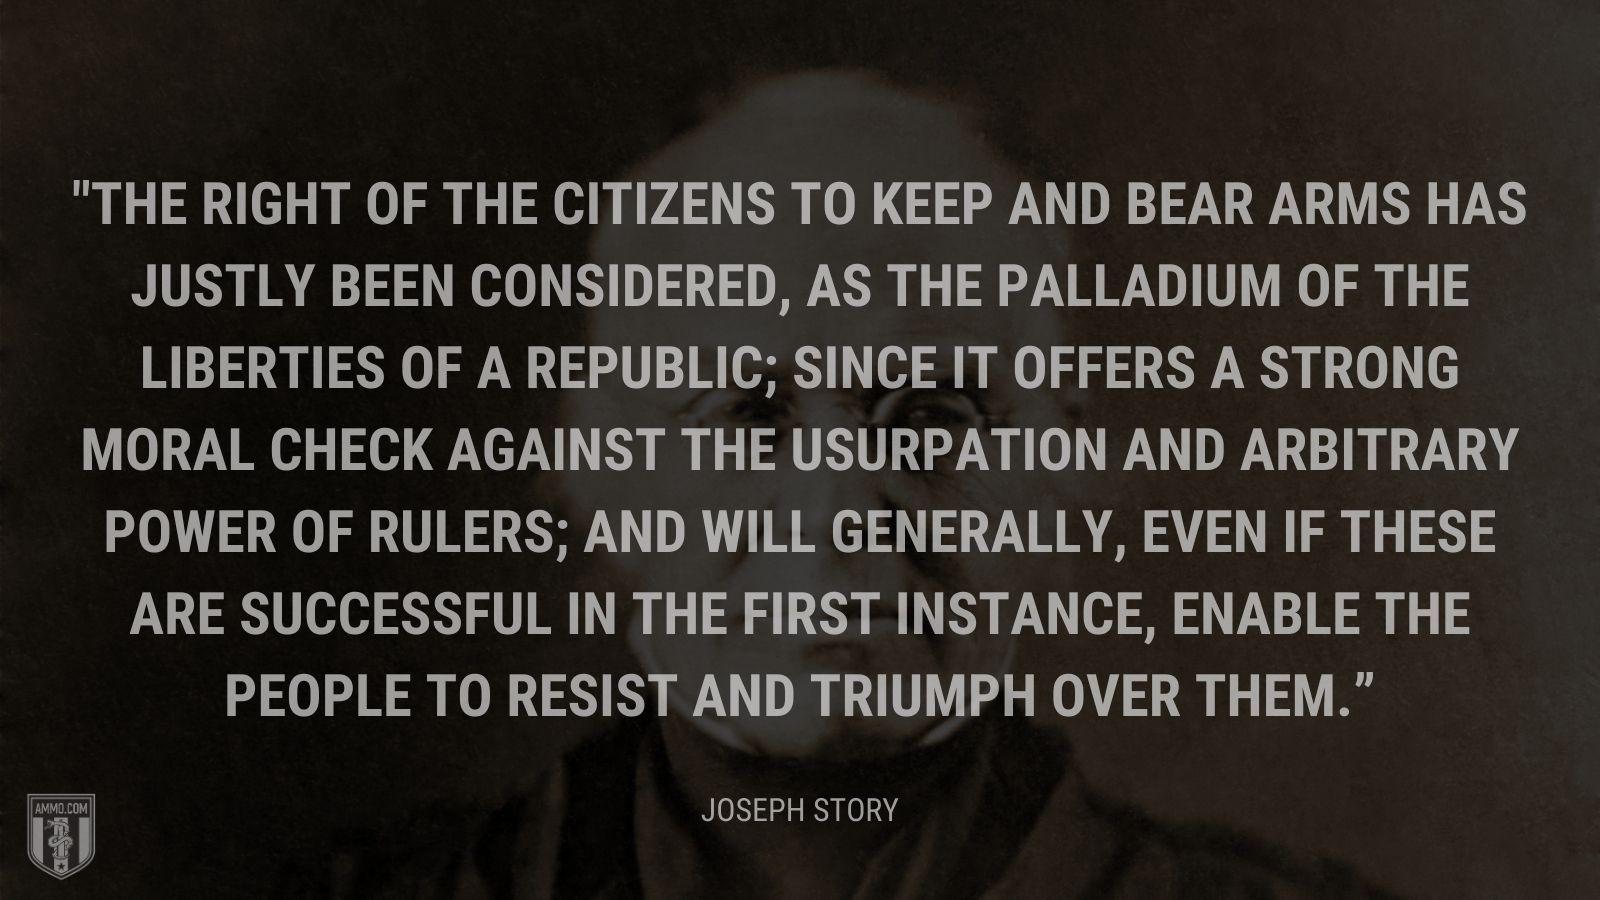 """The right of the citizens to keep and bear arms has justly been considered, as the palladium of the liberties of a republic; since it offers a strong moral check against the usurpation and arbitrary power of rulers; and will generally, even if these are successful in the first instance, enable the people to resist and triumph over them."" - Joseph Story"